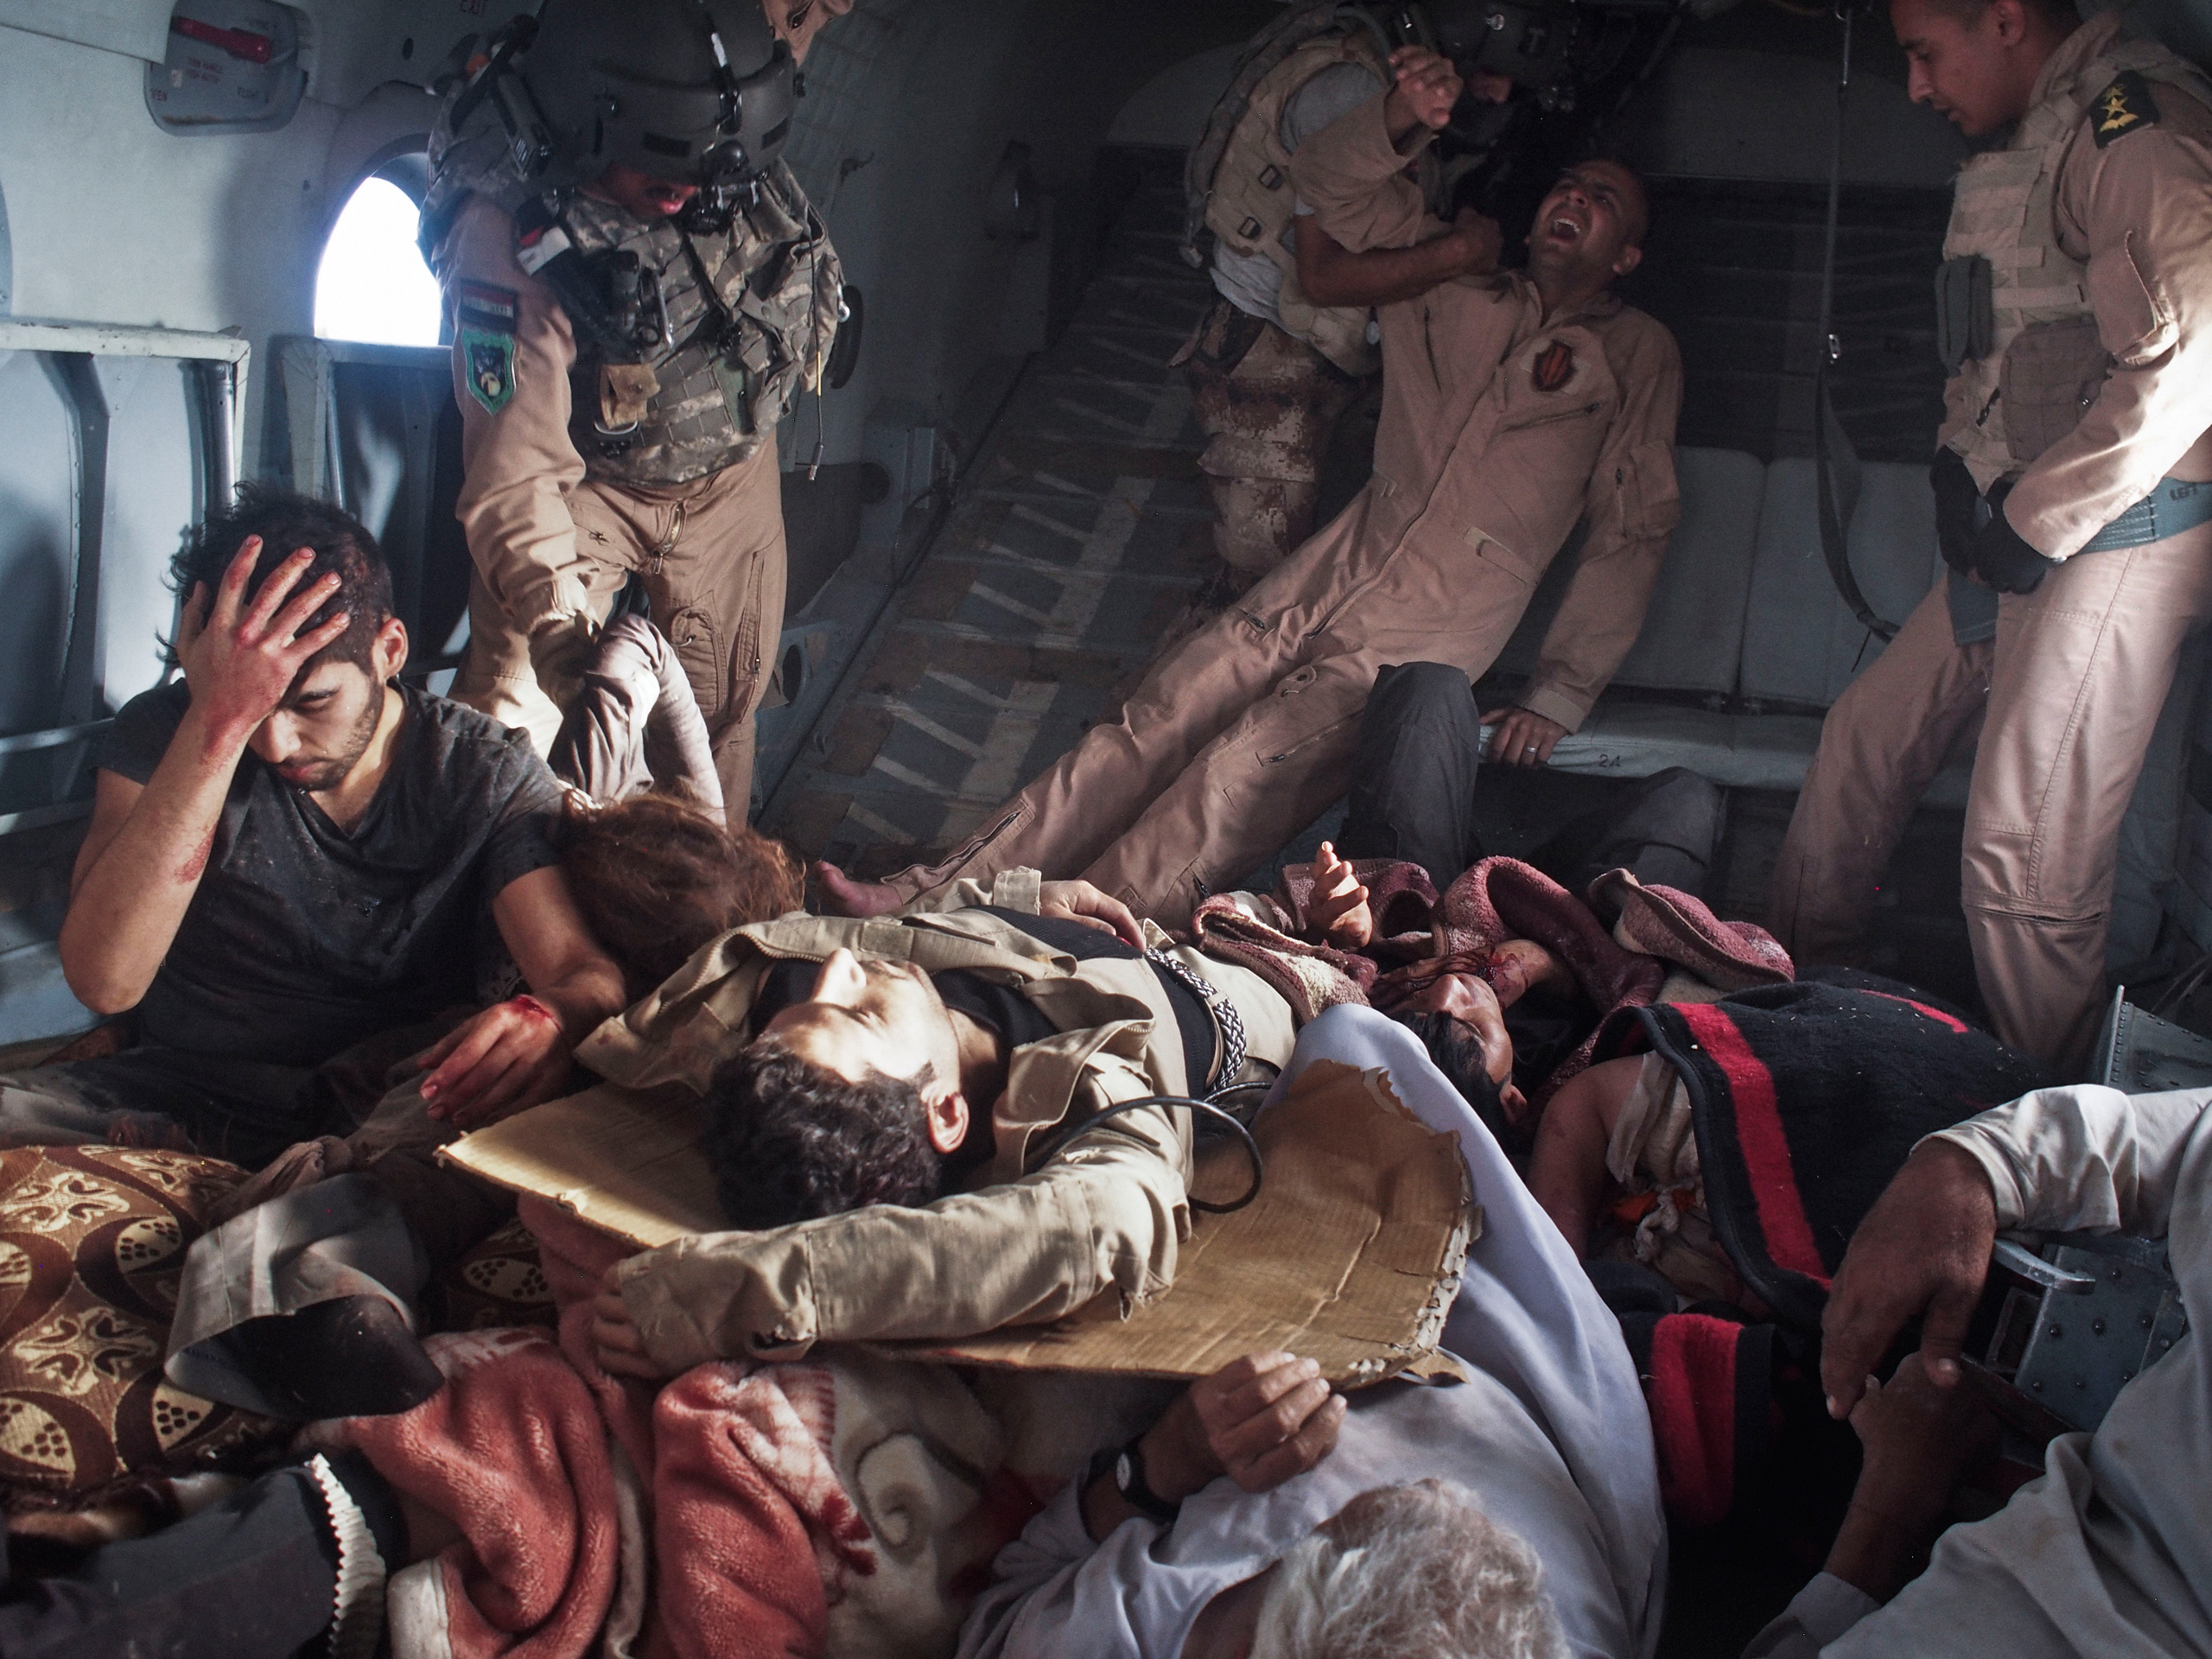 Injured survivors of an Iraqi Air Force helicopter crash on Mount Sinjar, Iraq lie onboard a rescue helicopter on its way to Iraqi Kurdistan on August 12, 2014. The survivors included Yazidi civilians, Kurdish and Iraqi Army personnel, and journalists. The Yazidis were fleeing persecution at the hands of Islamist extremists who had recently taken over their hometowns in Iraq's Ninevah province. In the high grounds of Mount Sinjar, thousands of Yazidis found safety from ISIS, but also the risk of dying from hunger and thirst. The first rescue helicopter had been sent to save the besieged civilians from that dismal fate, but it crashed into the side of the mountain shortly after takeoff.